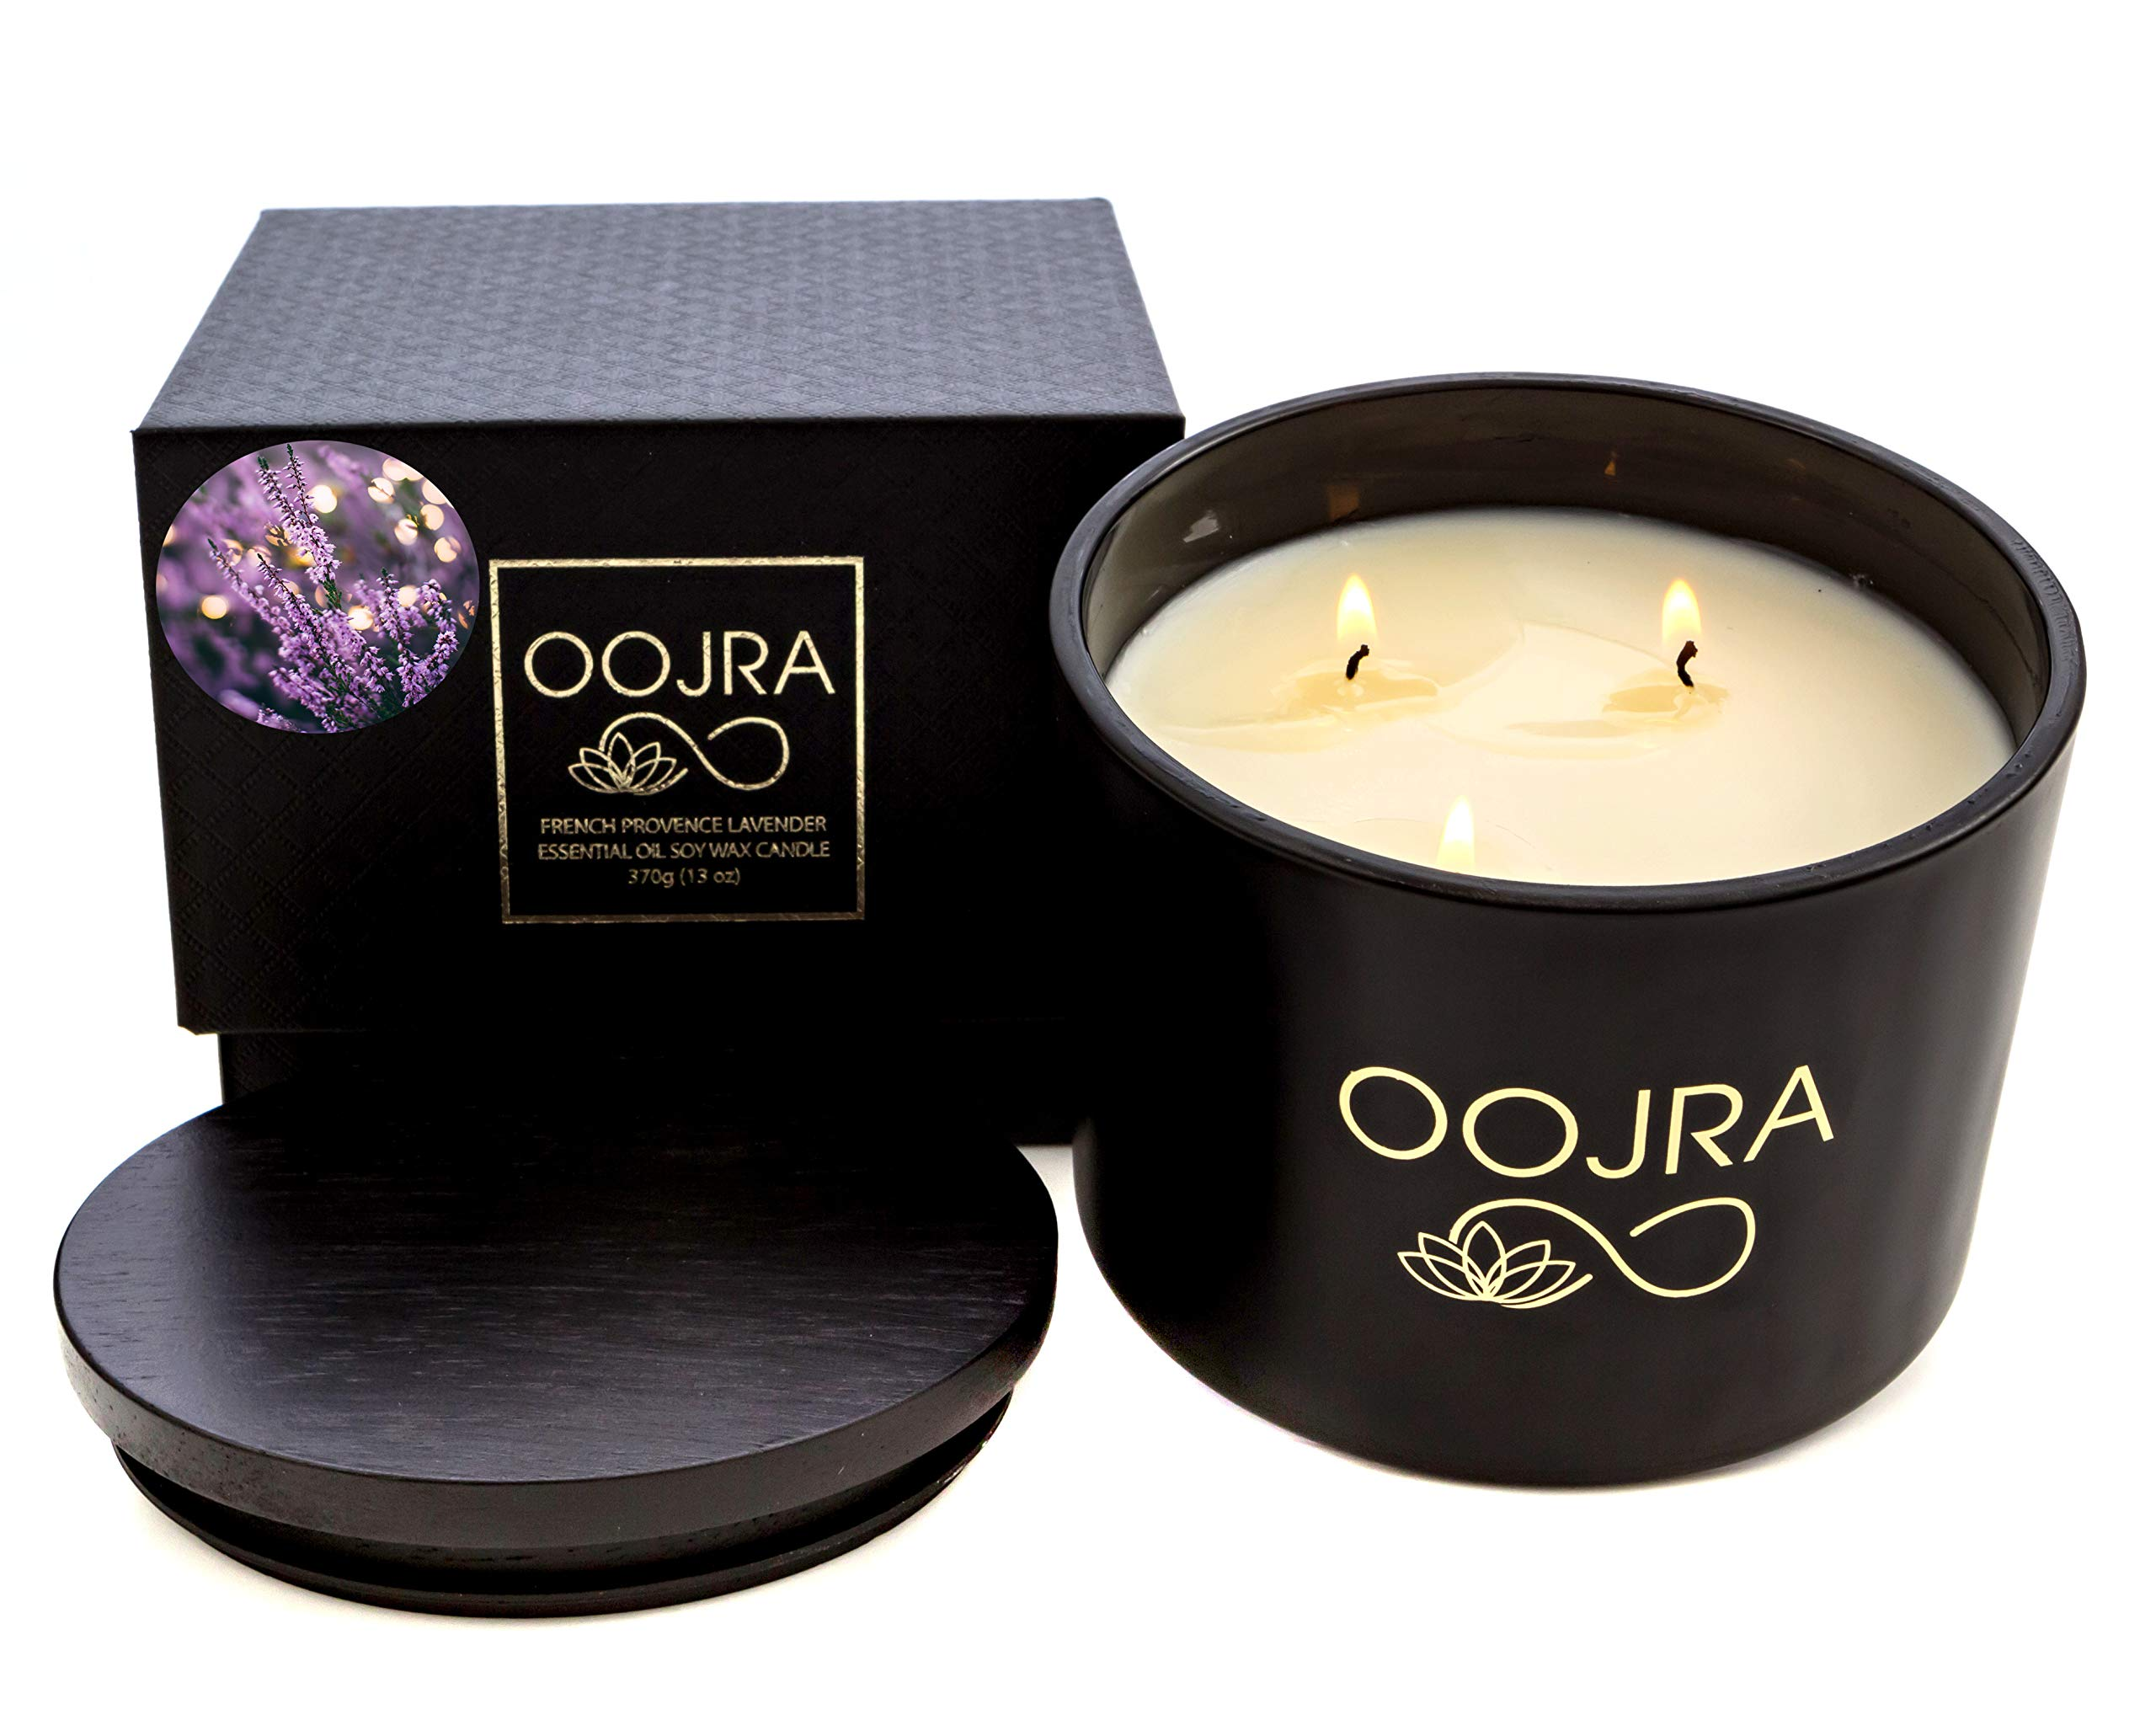 OOJRA Essential Oil French Provence Lavender Scented Soy Wax Luxury Candle 3 Wick 13 oz (370g) 75+ Hours with Lid and Gift Box